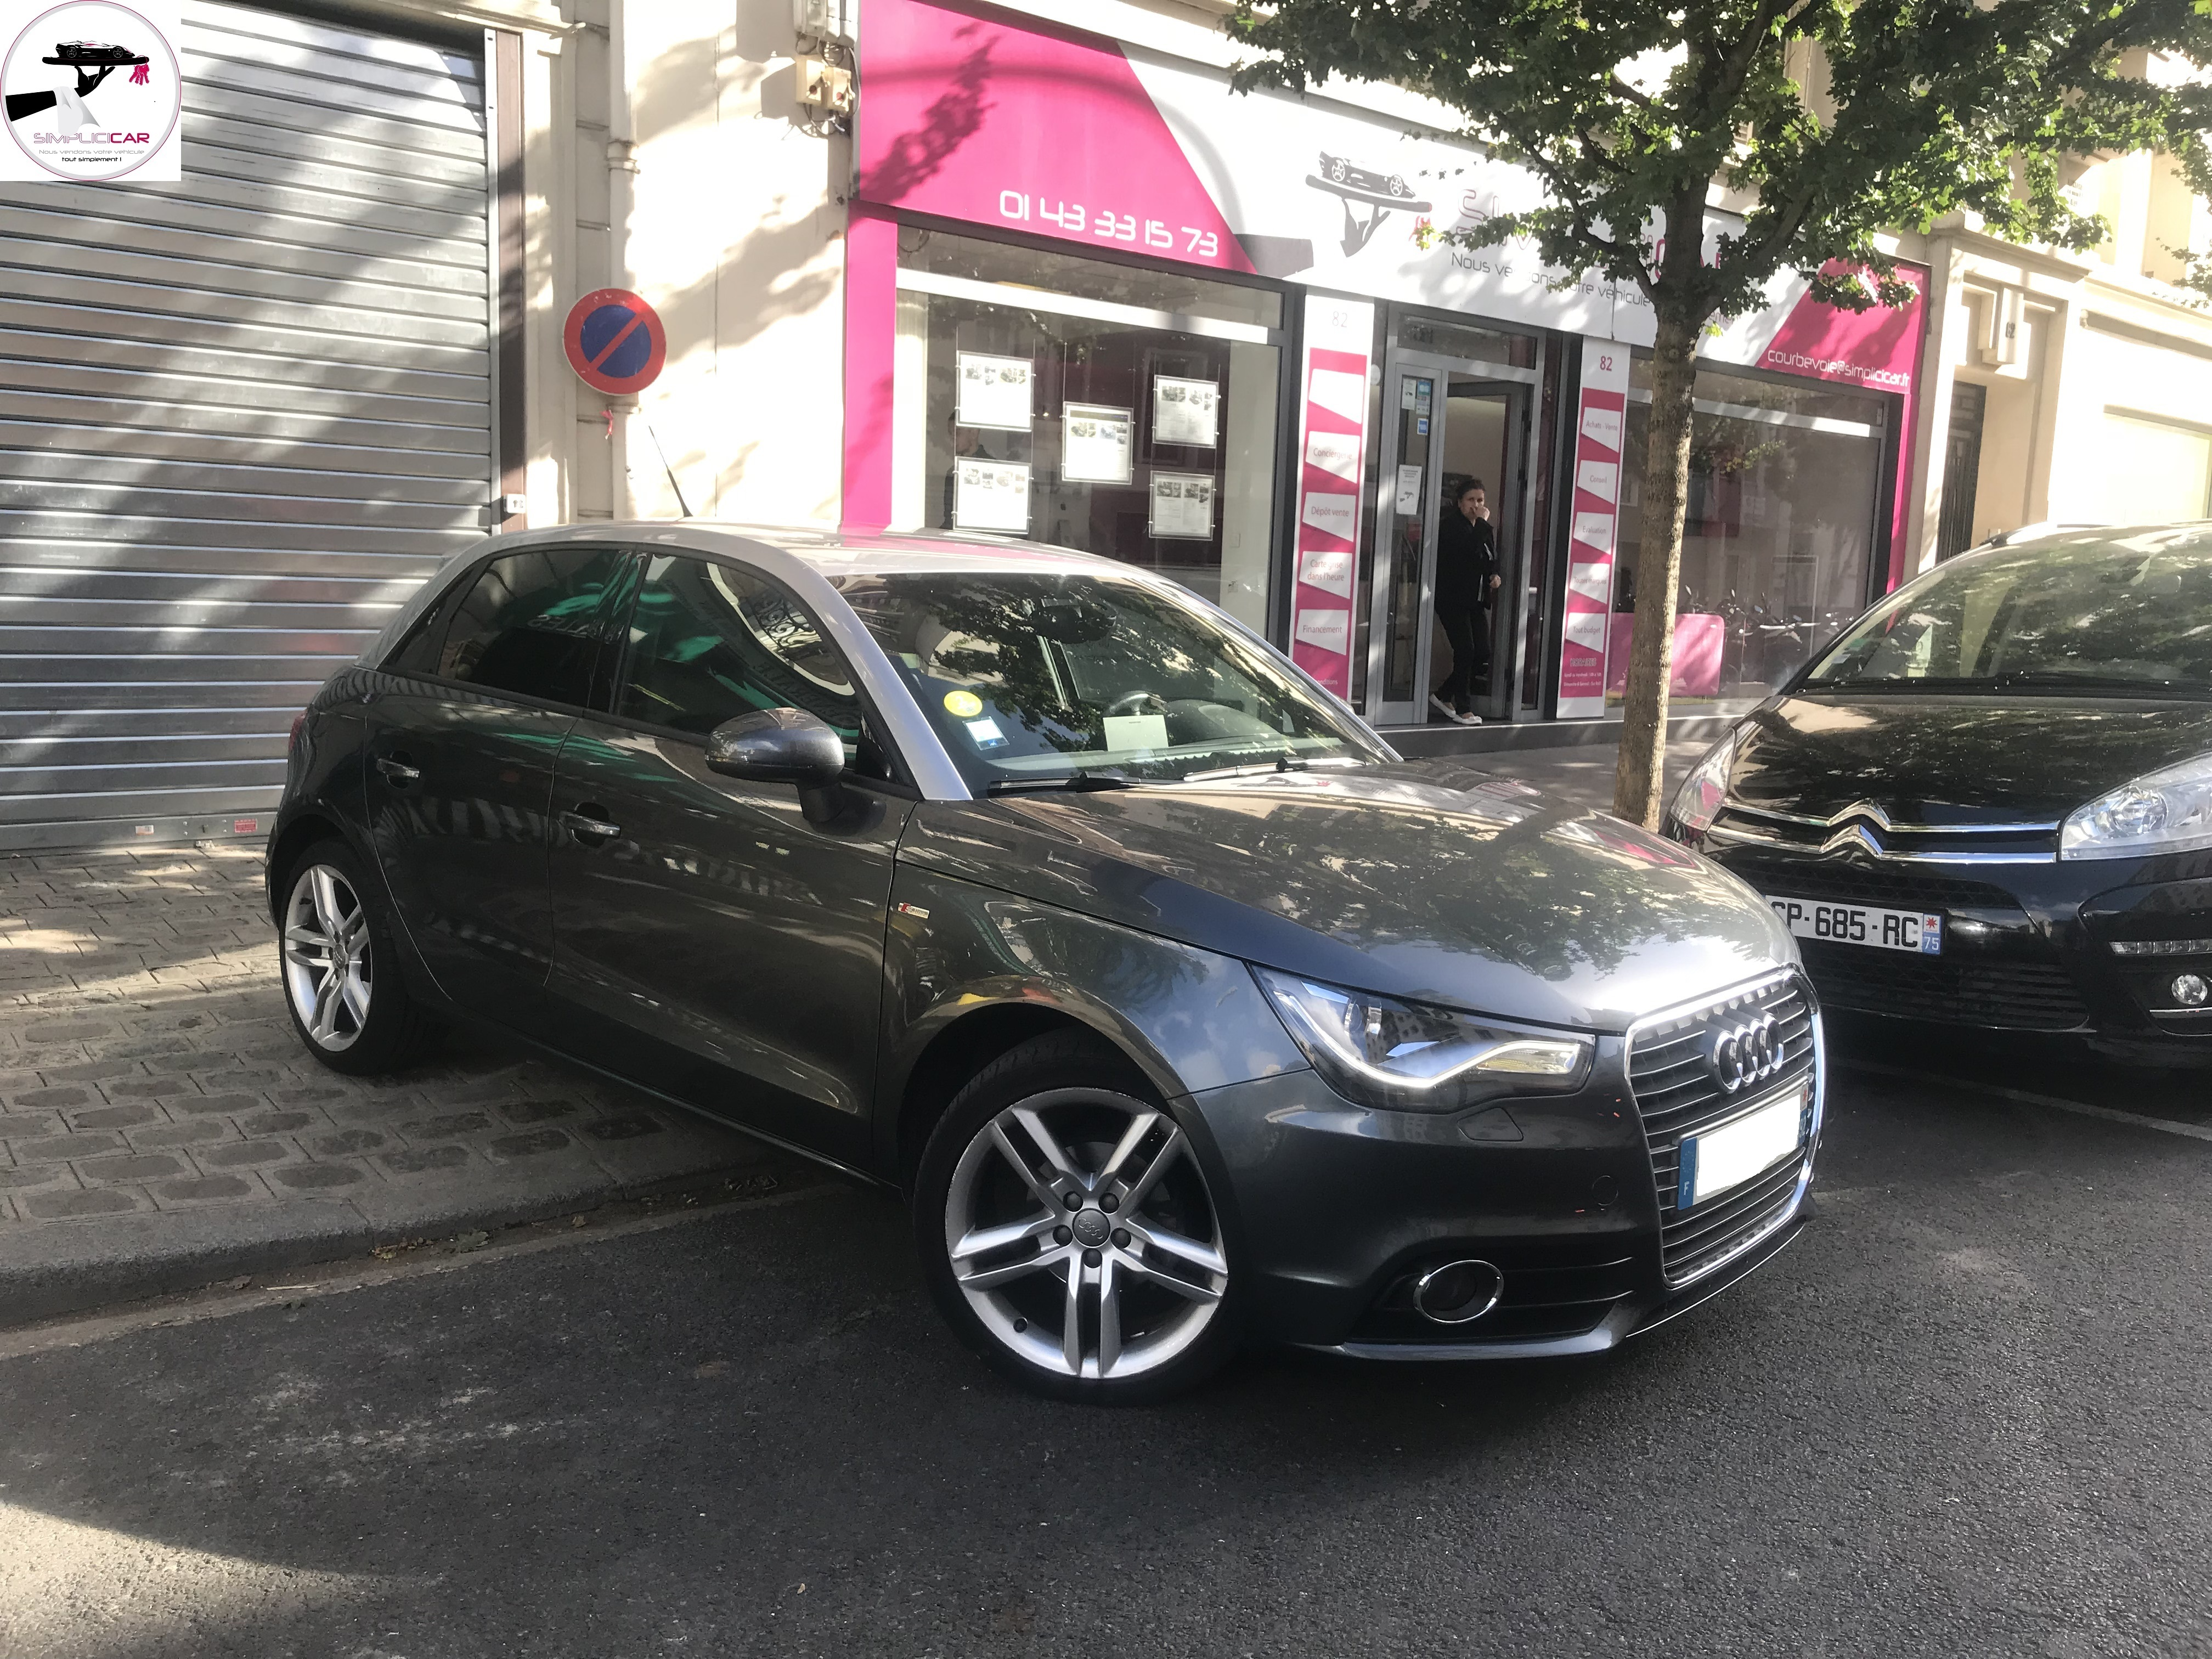 voiture audi a1 sportback 1 6 tdi 90 s line s tronic occasion diesel 2014 33900 km 18490. Black Bedroom Furniture Sets. Home Design Ideas